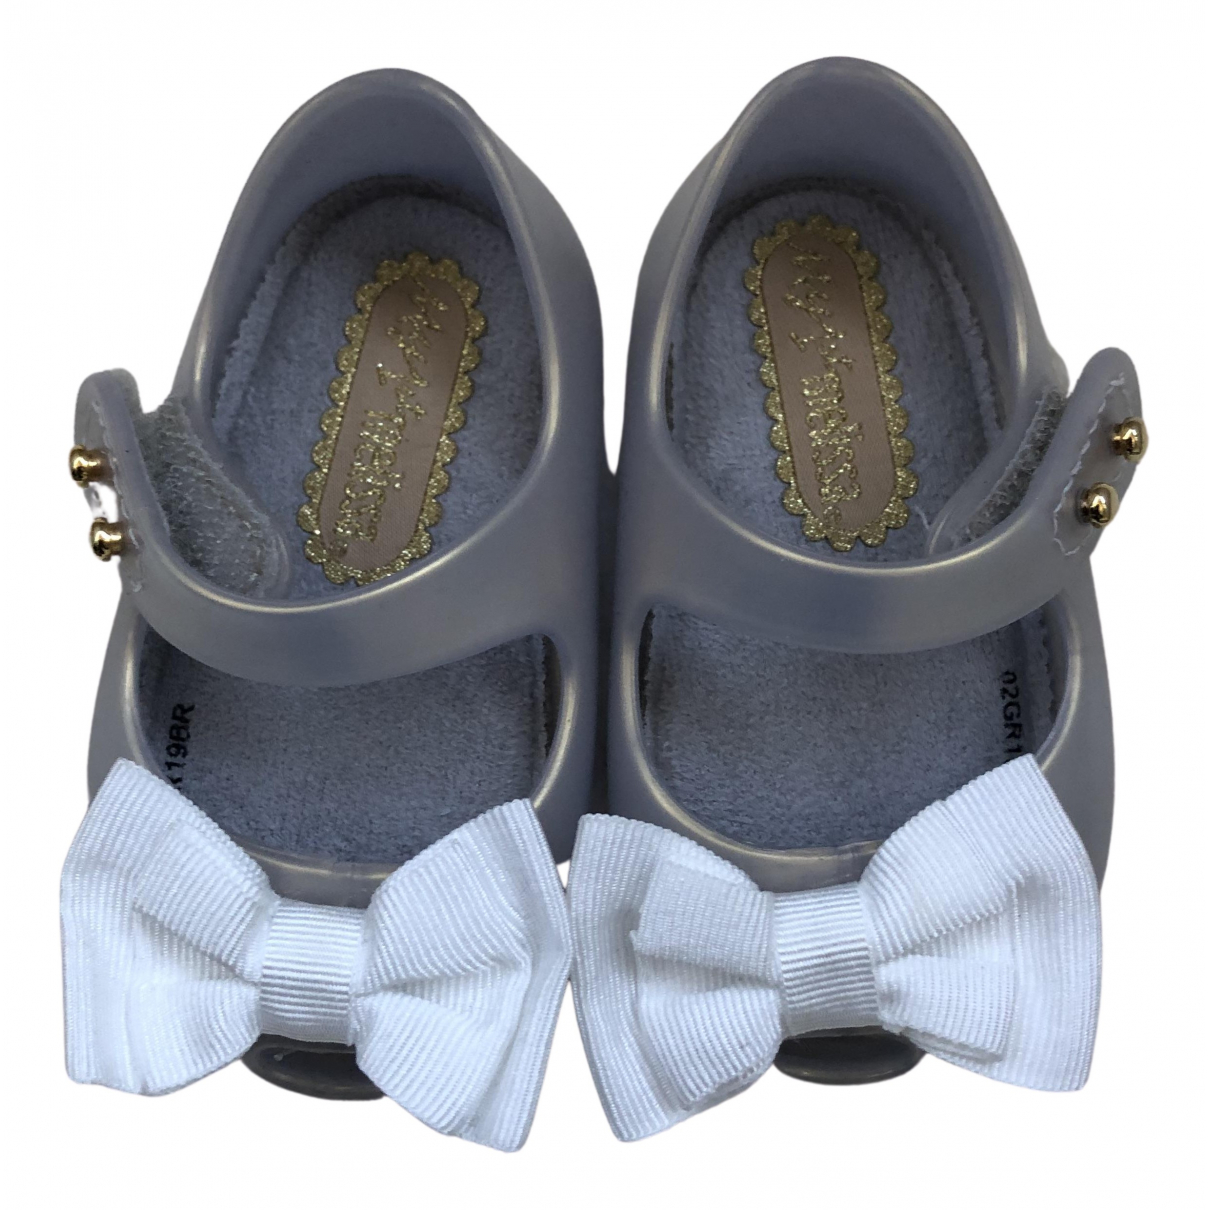 Melissa N Metallic Rubber First shoes for Kids 17 FR